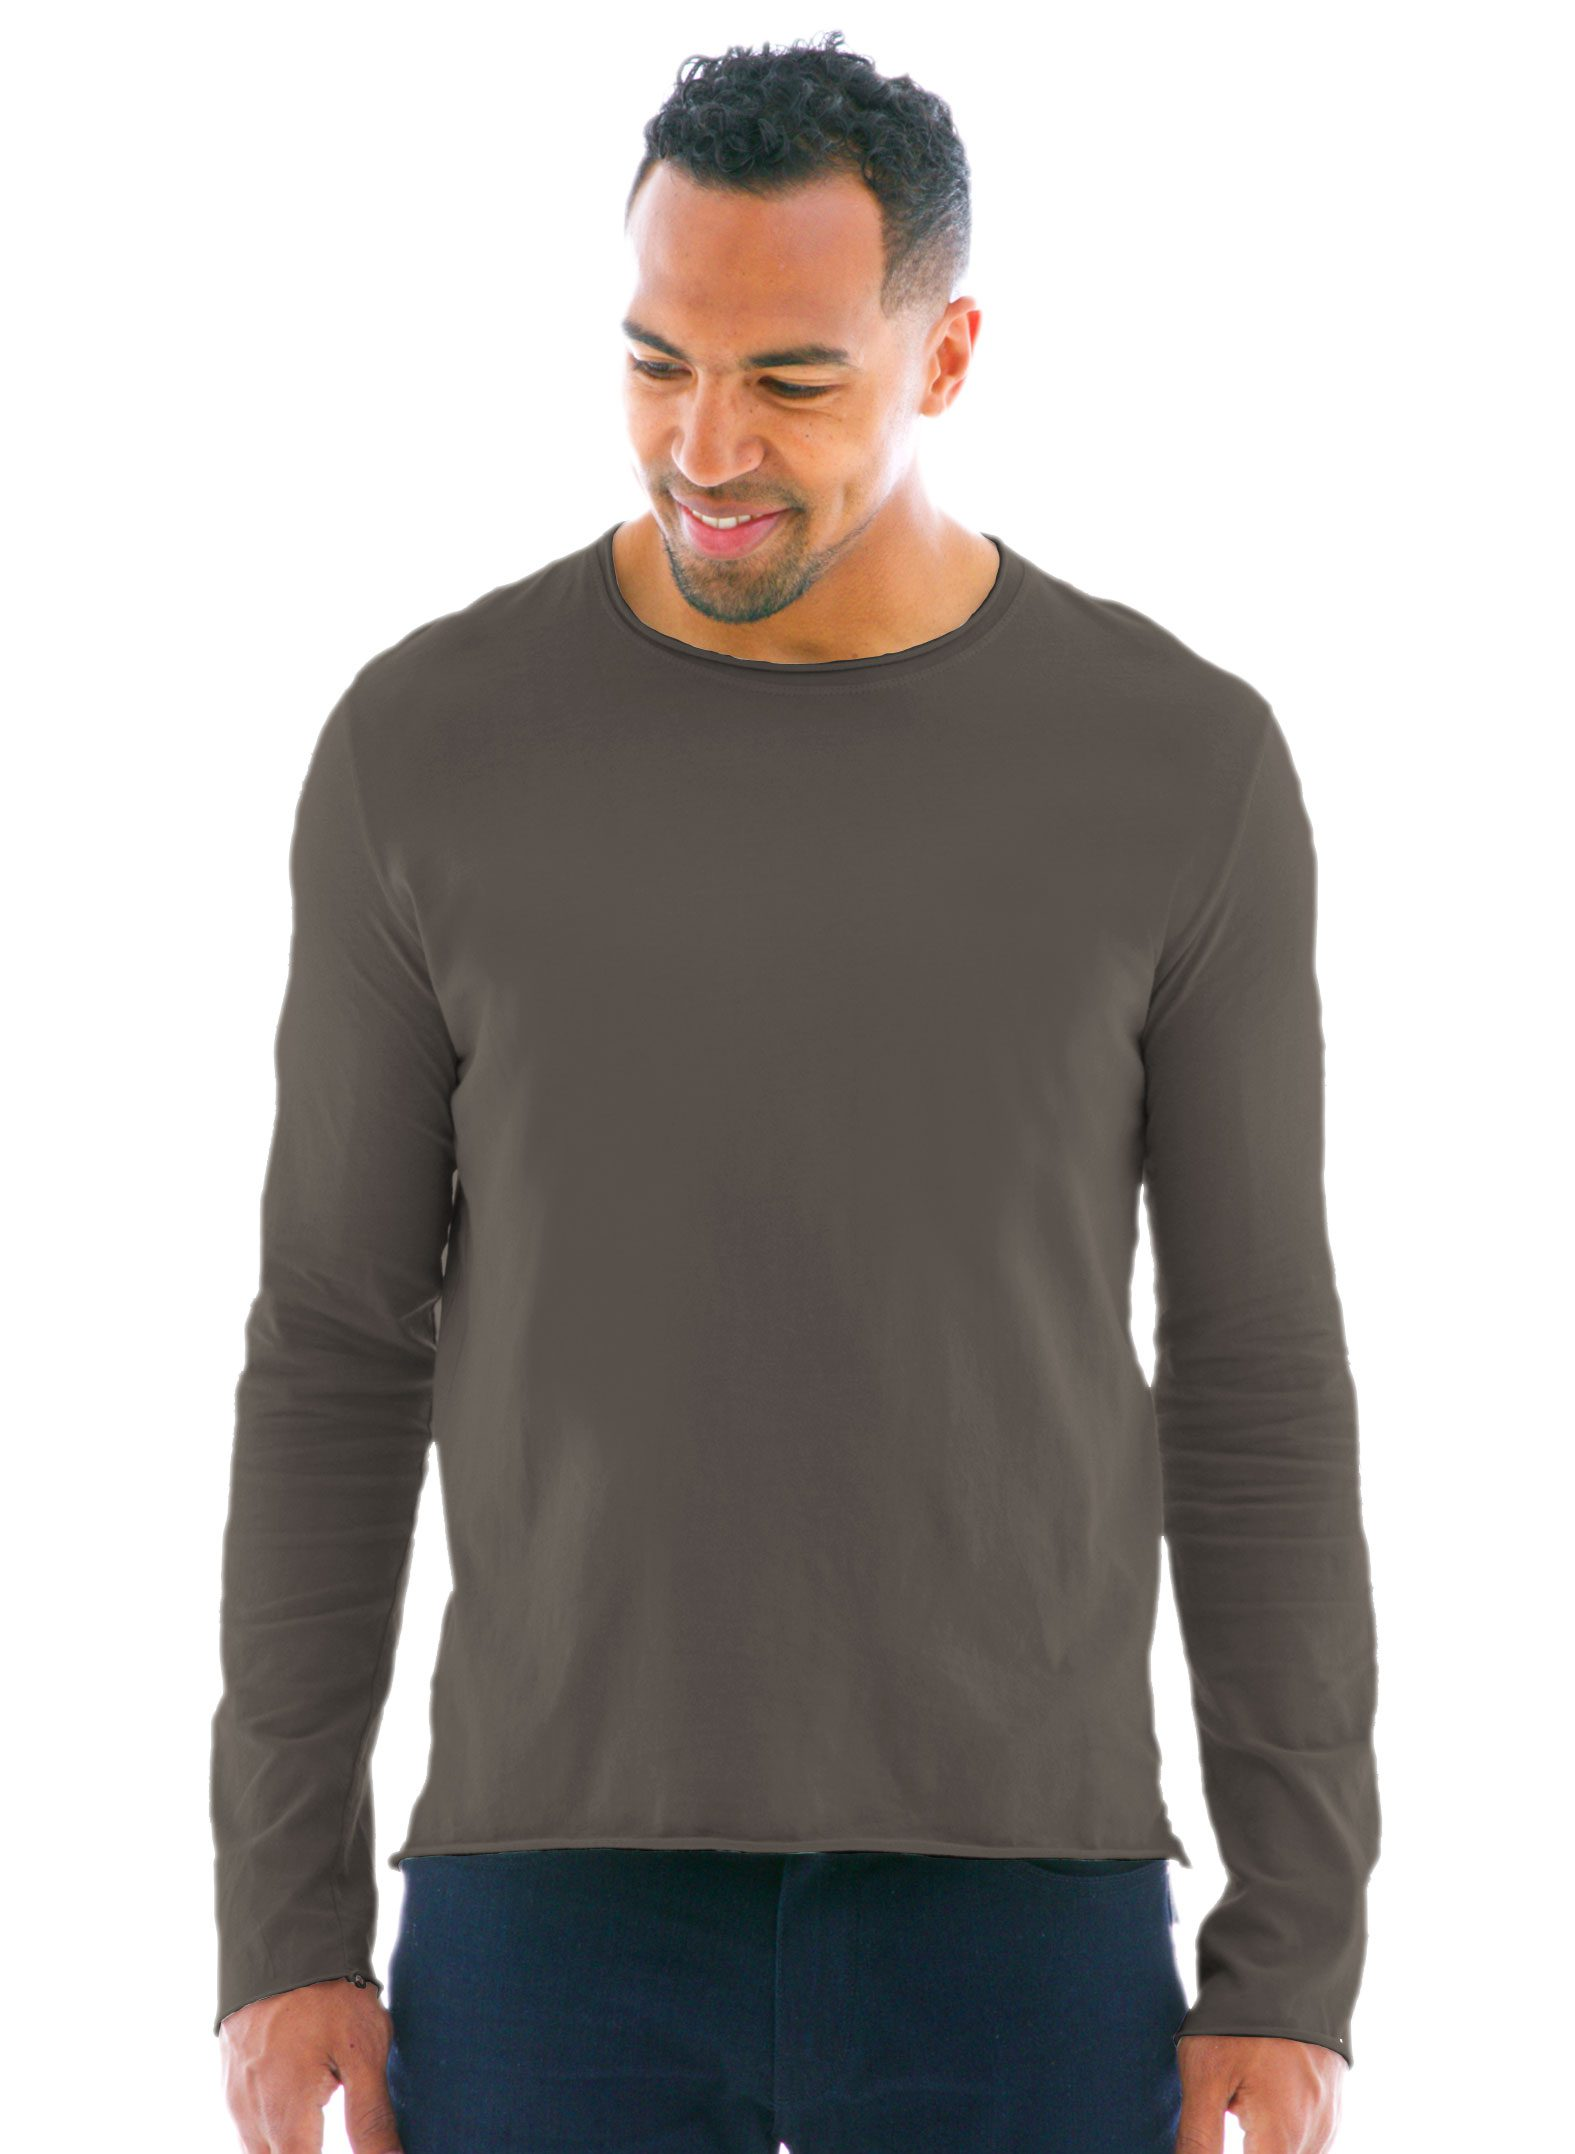 Raw Edge Long Sleeve Crew T-Shirt Front in Medium Gray